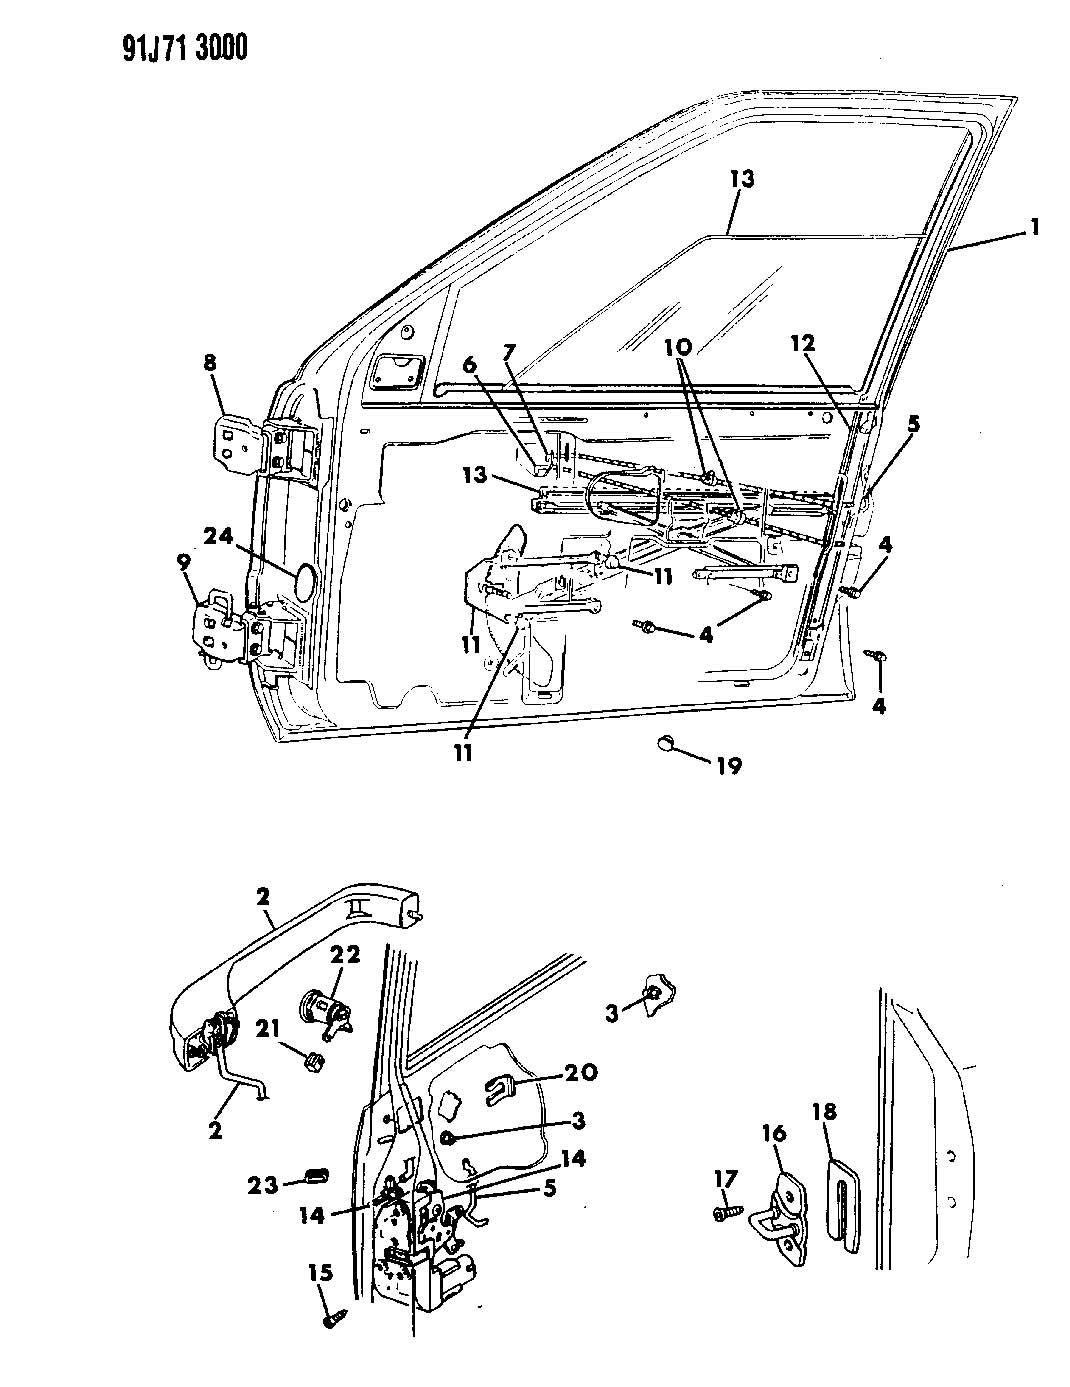 Double Triangulated Rear 4 Link Suspension Kit Links Optional likewise Illust Ref c Exhaust furthermore Universal Wiring Harness Road Light P 240 moreover ZJ Grand Cherokee Parts moreover 1993 Chevy Truck Parking Brake Light. on jeep door parts html